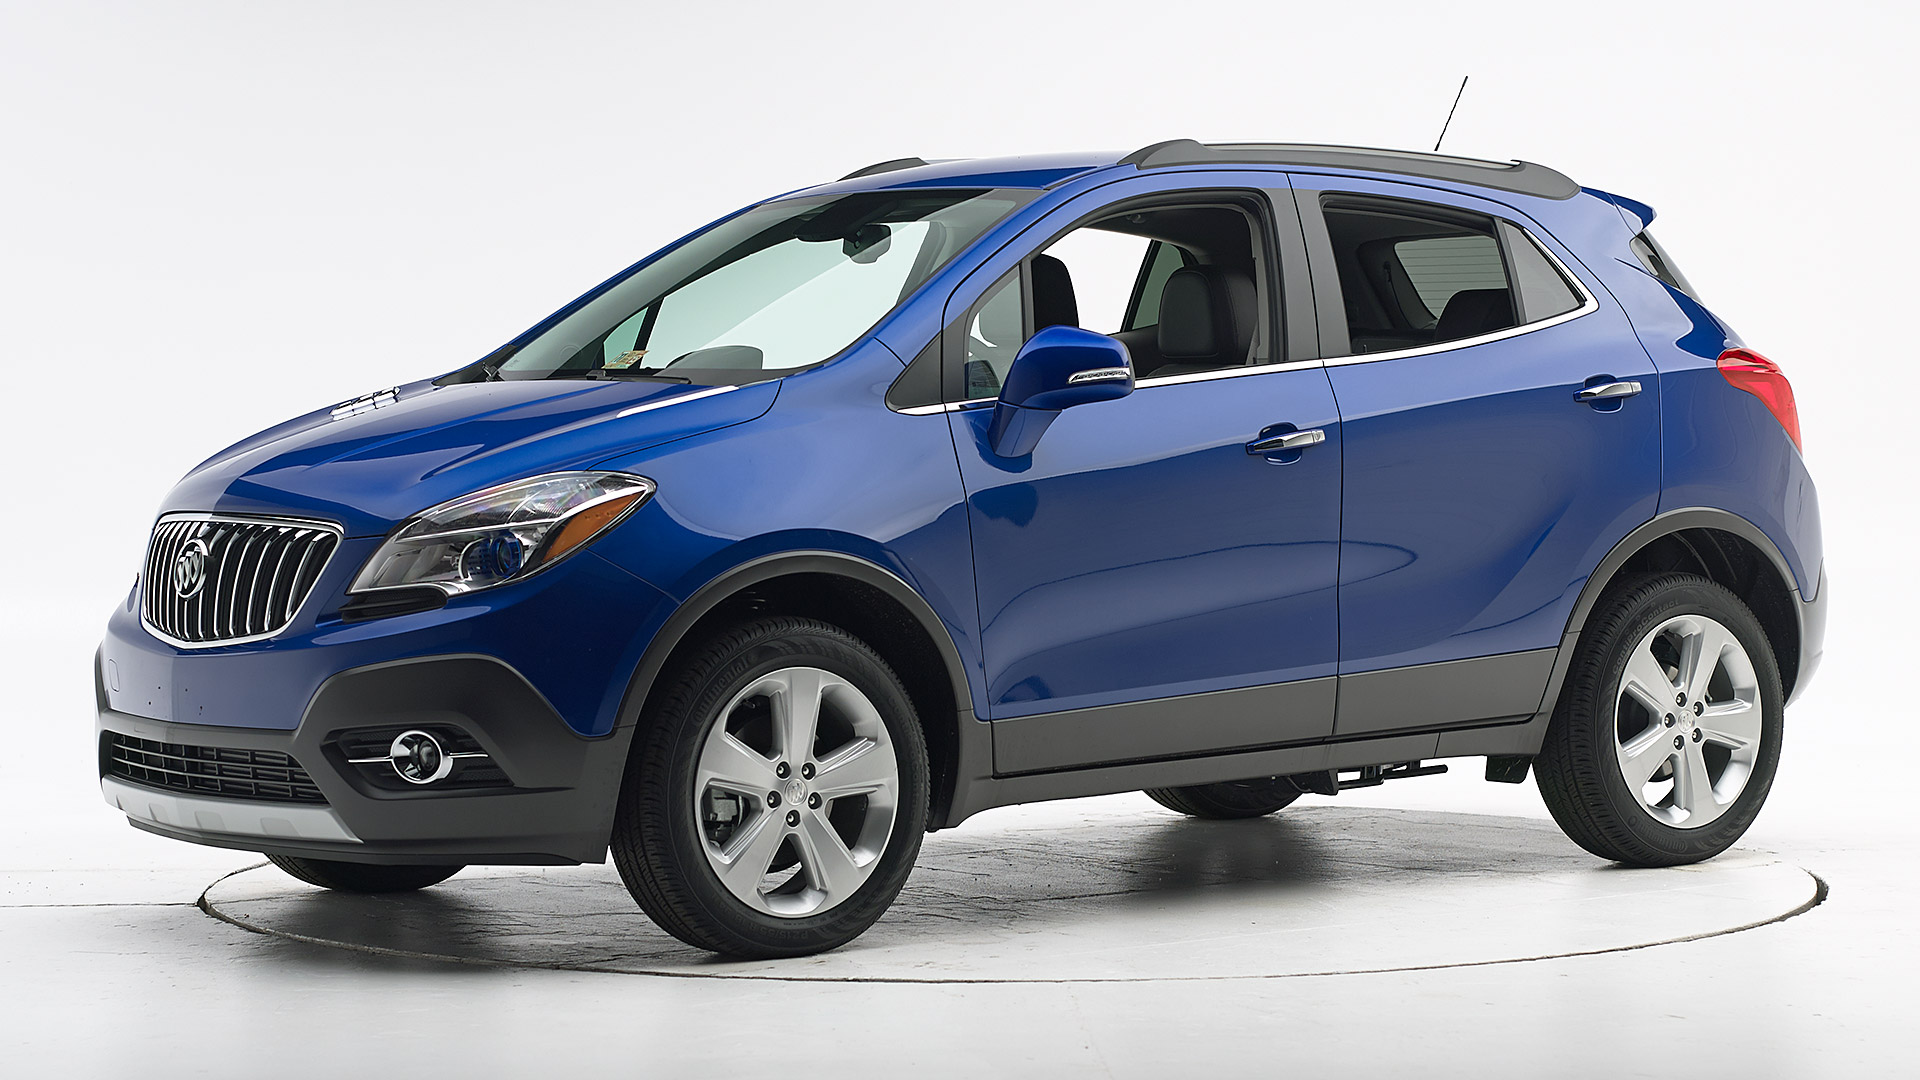 2019 Buick Encore 4-door SUV